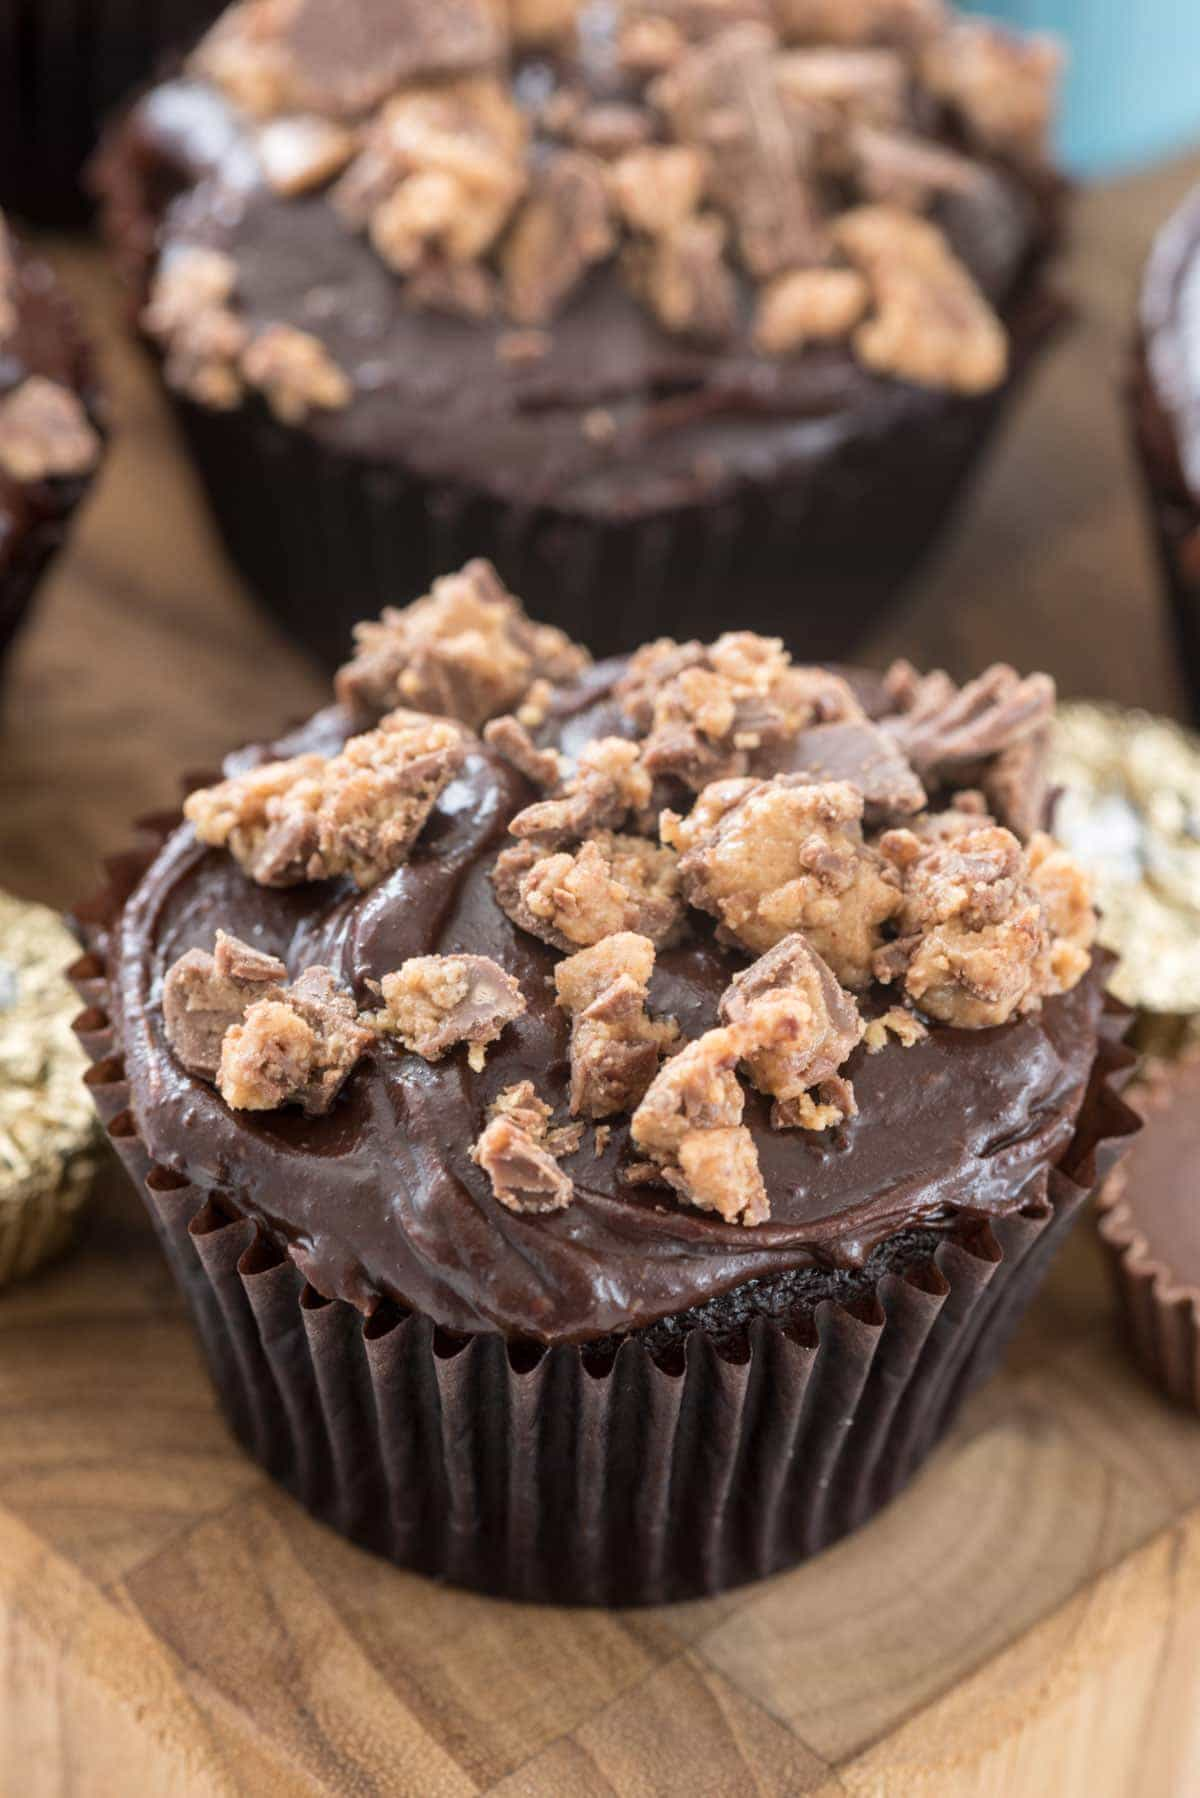 Peanut Butter Cup Cupcakes - chocolate cupcakes filled with peanut butter filling and topped with the BEST frosting!